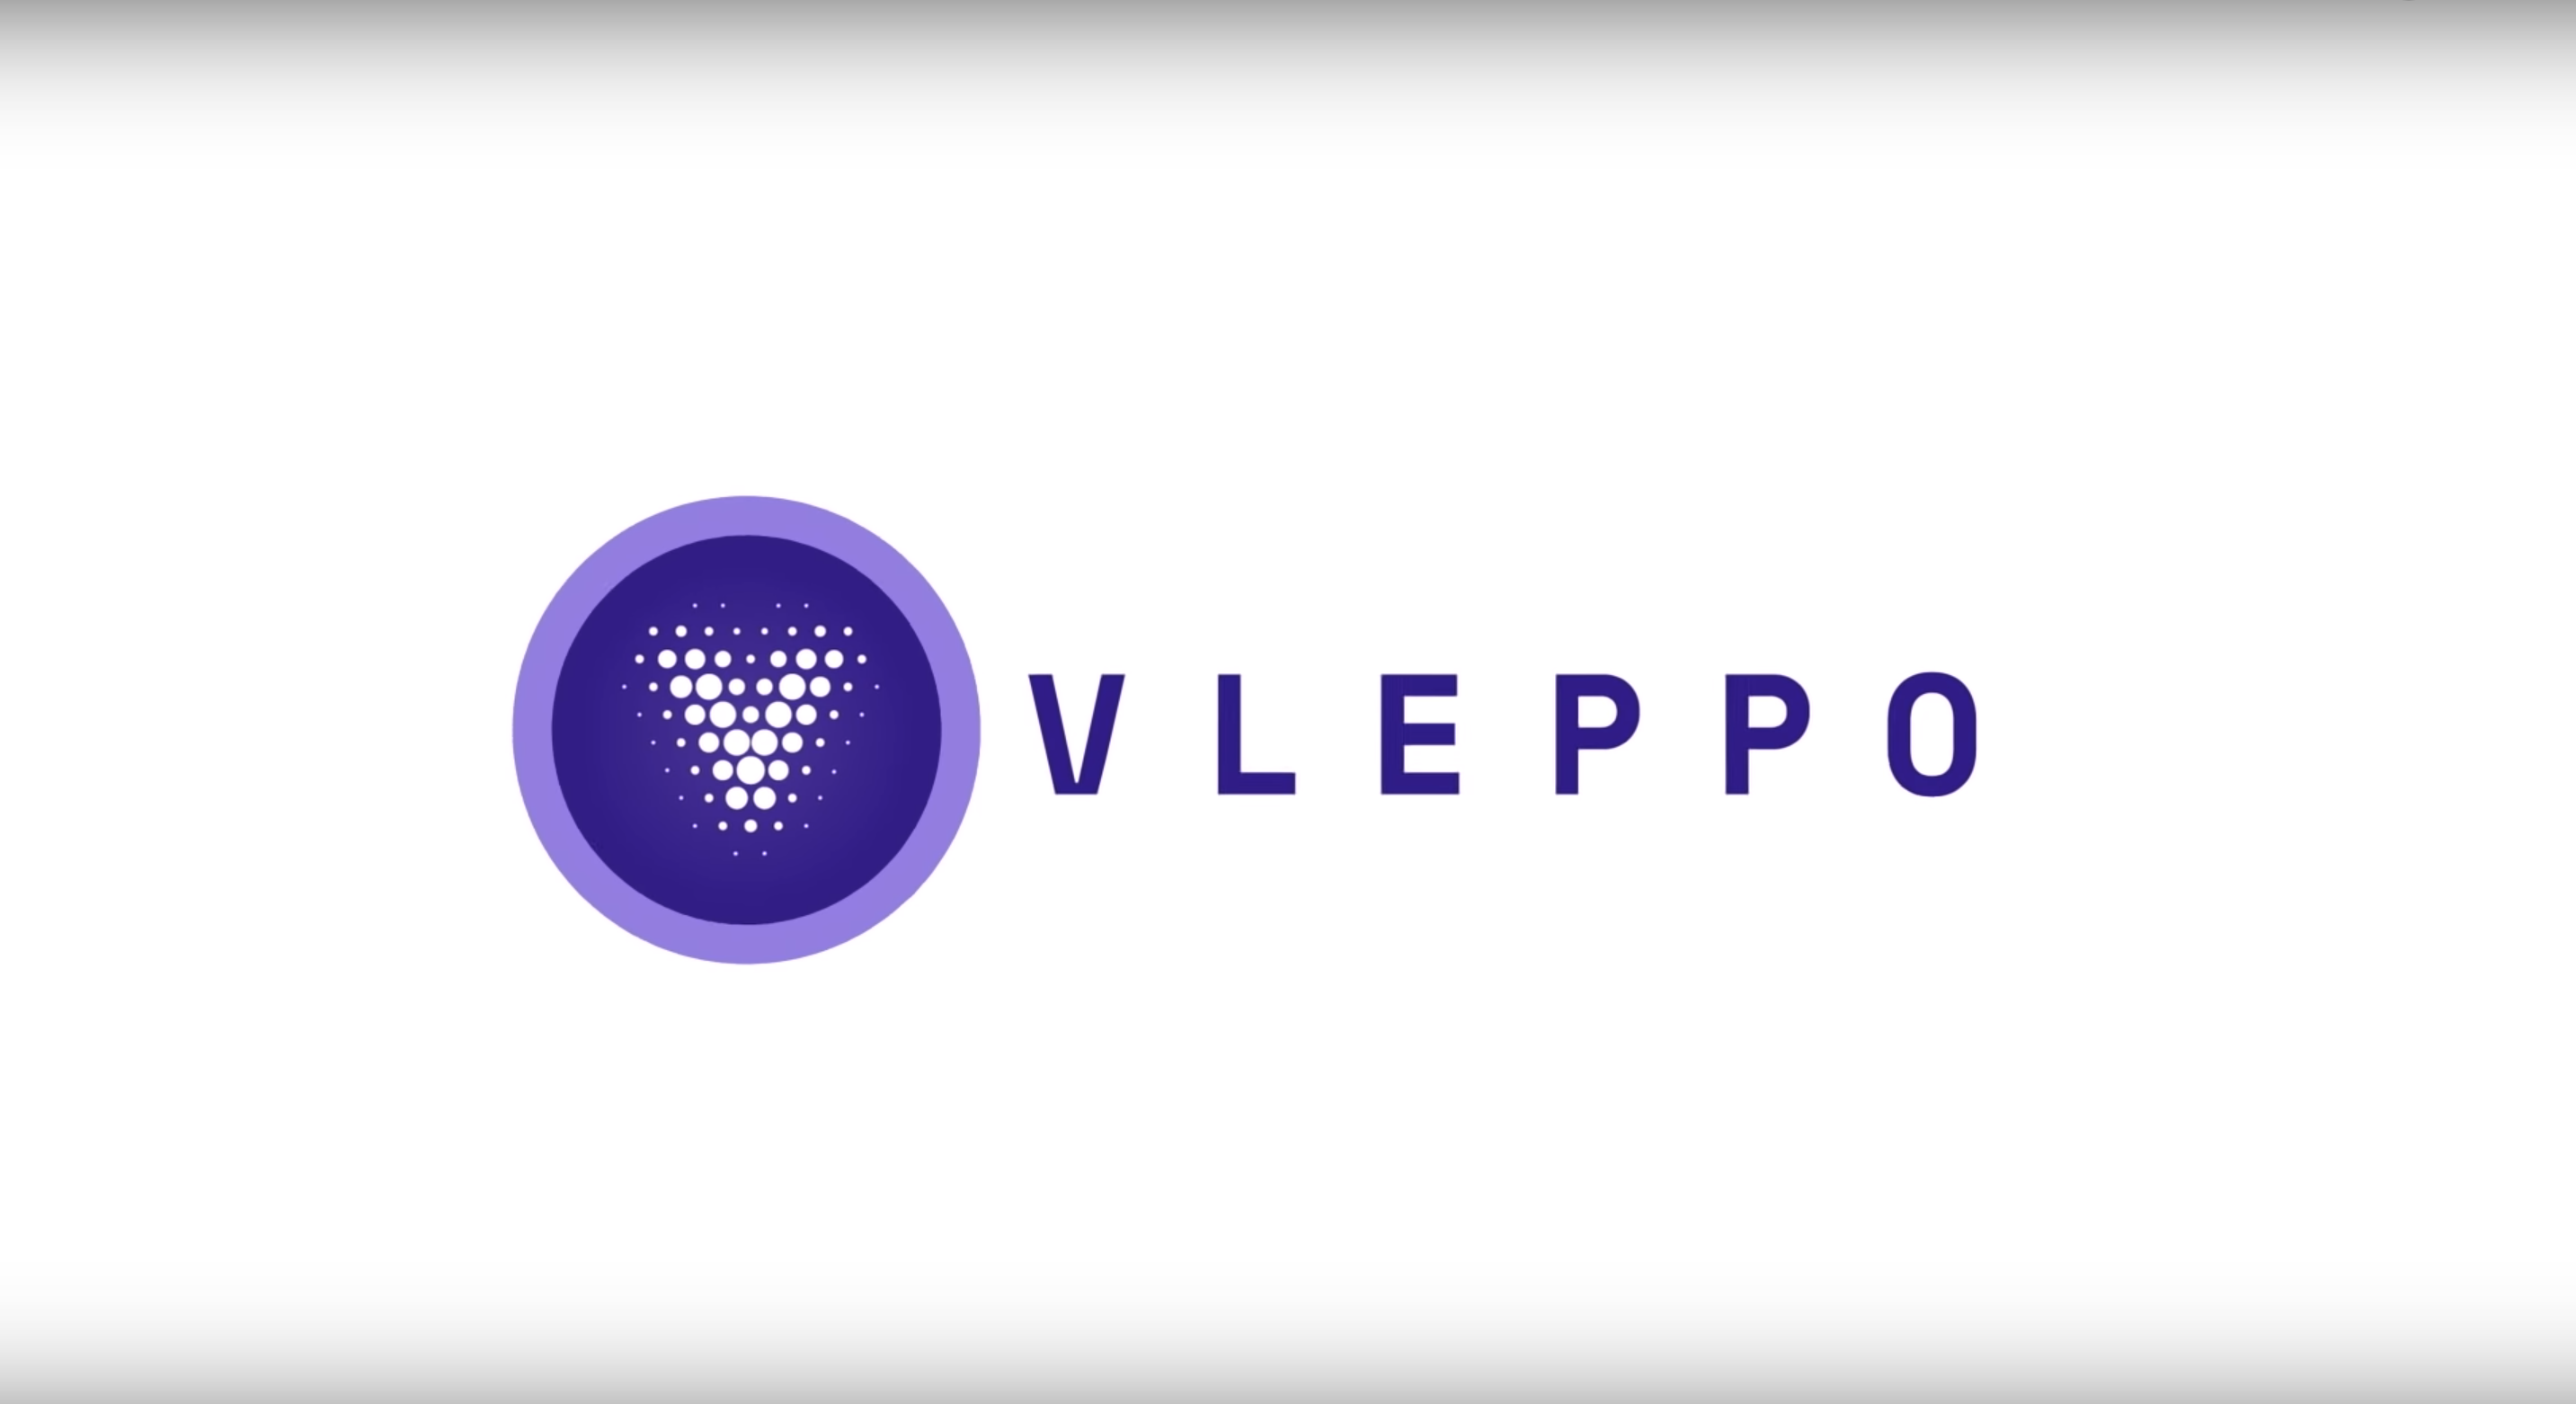 Vleppo is closer to achieving basic platform functions for its users 1